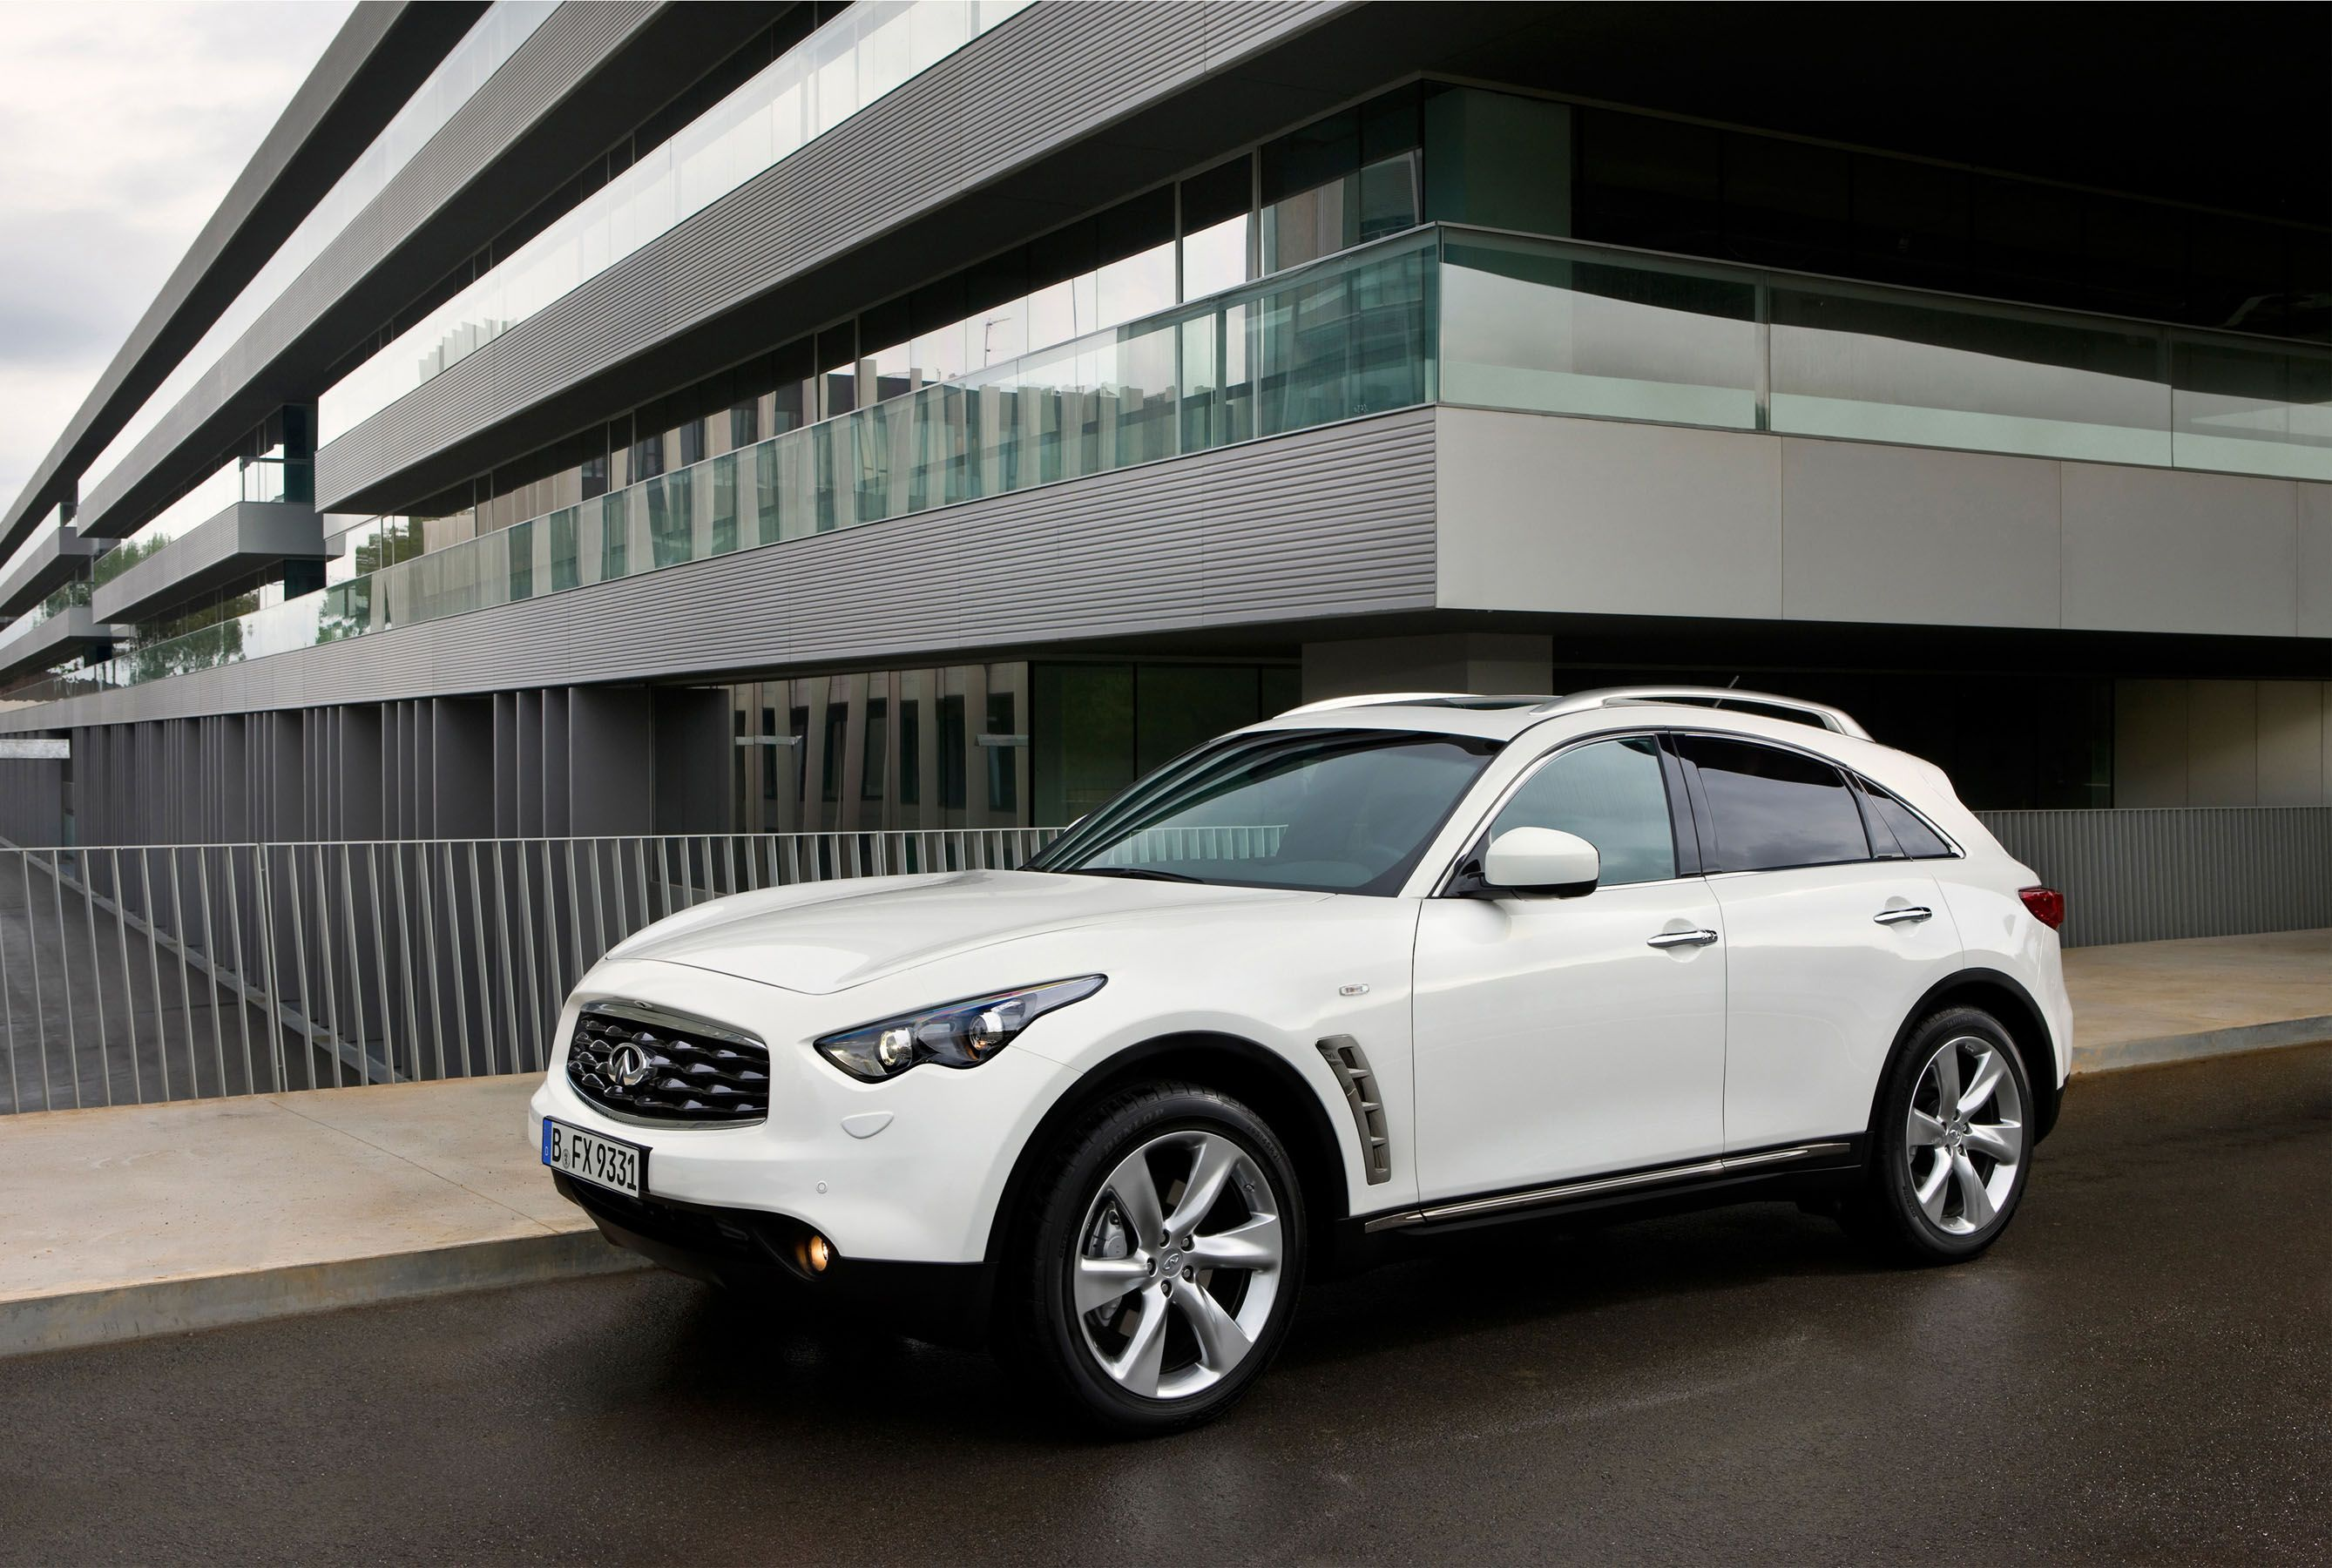 Infiniti Fx Performance Suv With Images Dream Cars Suv Cars